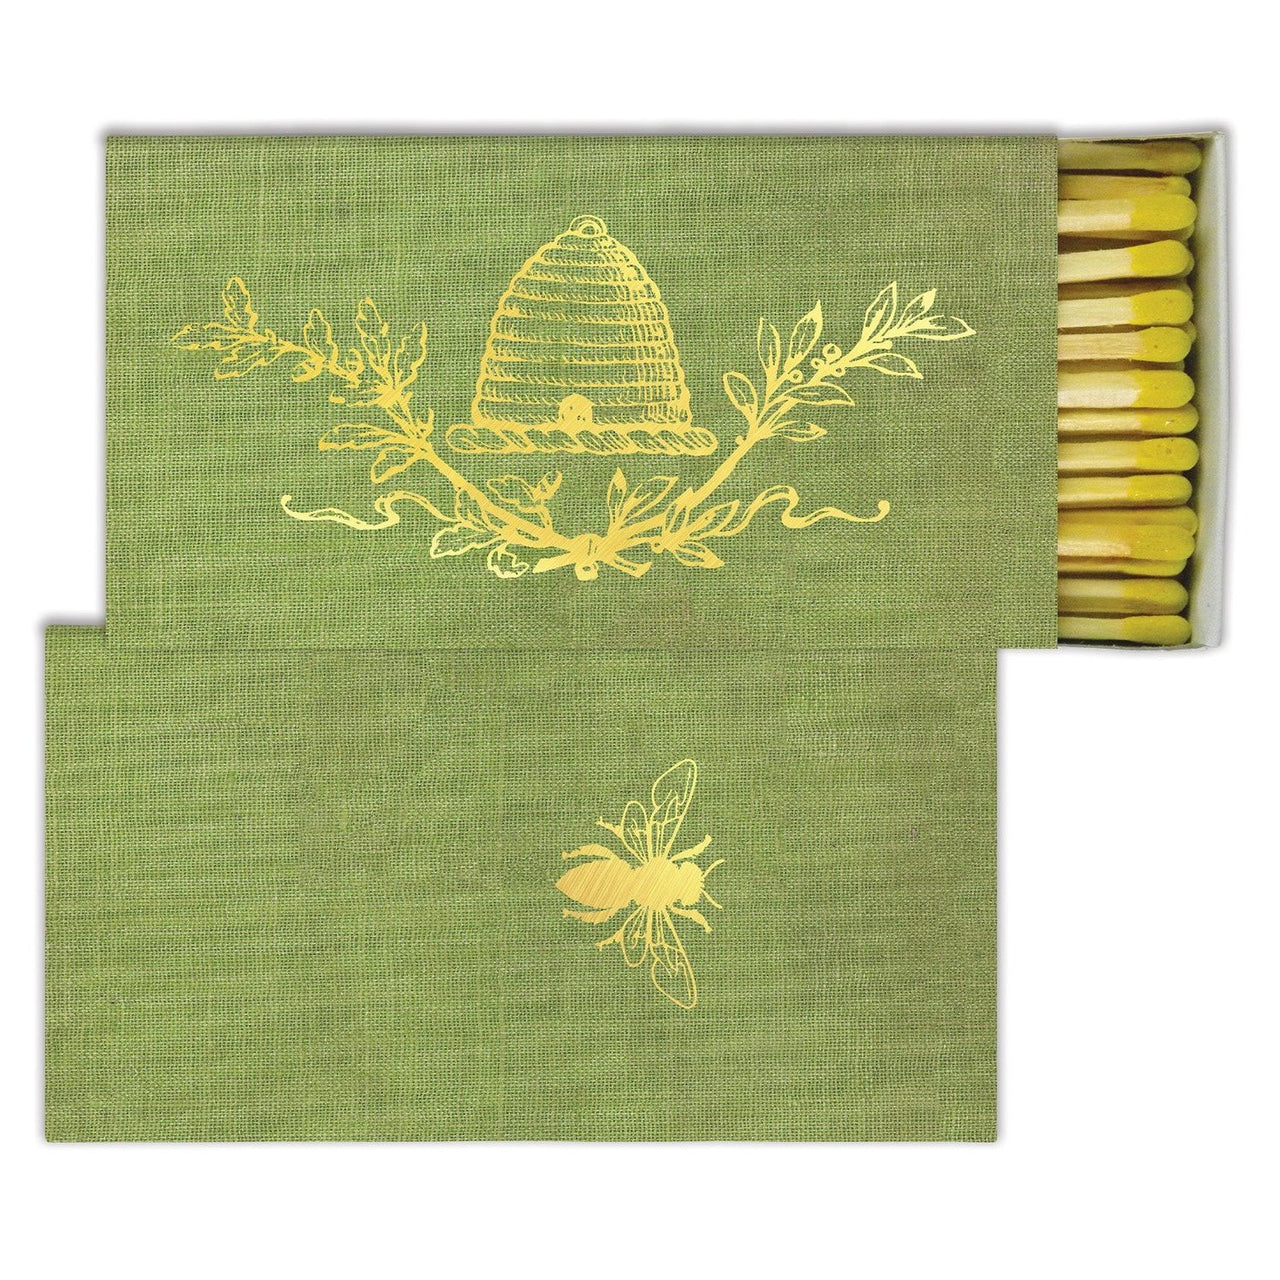 MATCHES - GOLD FOIL BEE CREST HomArts quintessential article of daily use, our signature Match Boxes flaunt unique designs with coordinating match tips. Sweet as a hostess gift, a perfect accompaniment to a candle, and always an eye catching pop of graphic decor. Safety matches, 50 sticks per box.